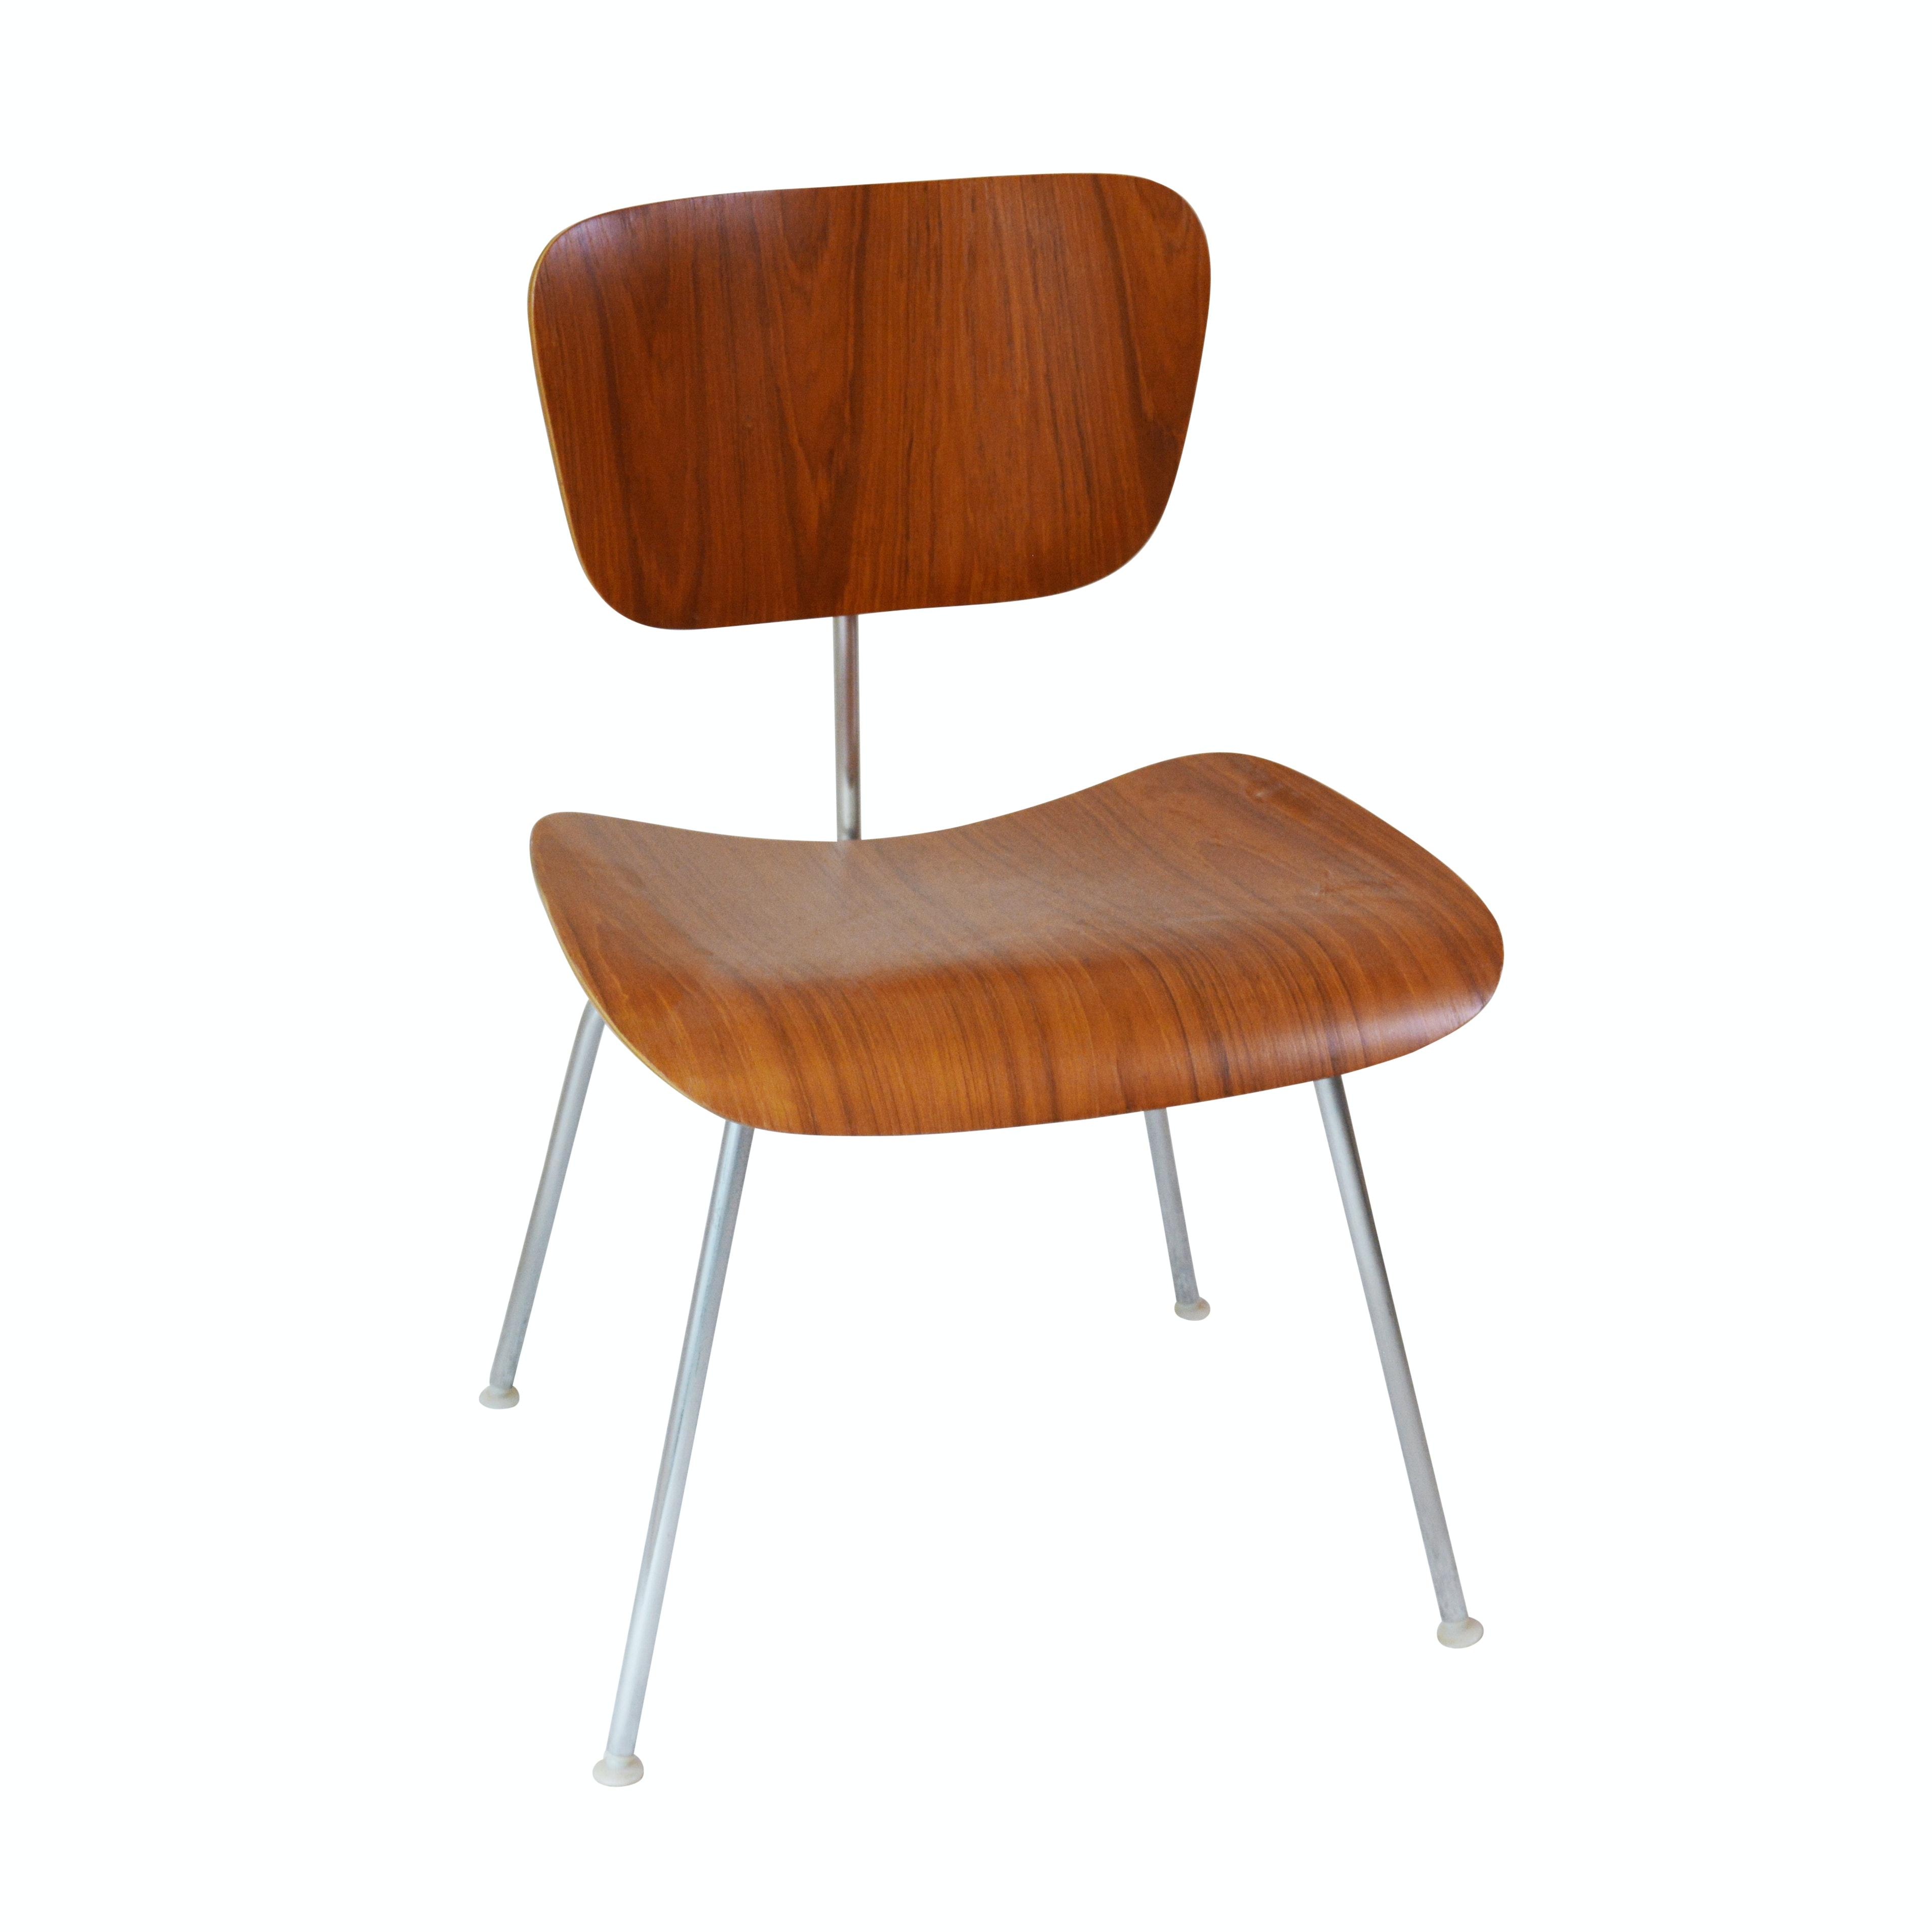 Eames Molded Plywood Accent Chair